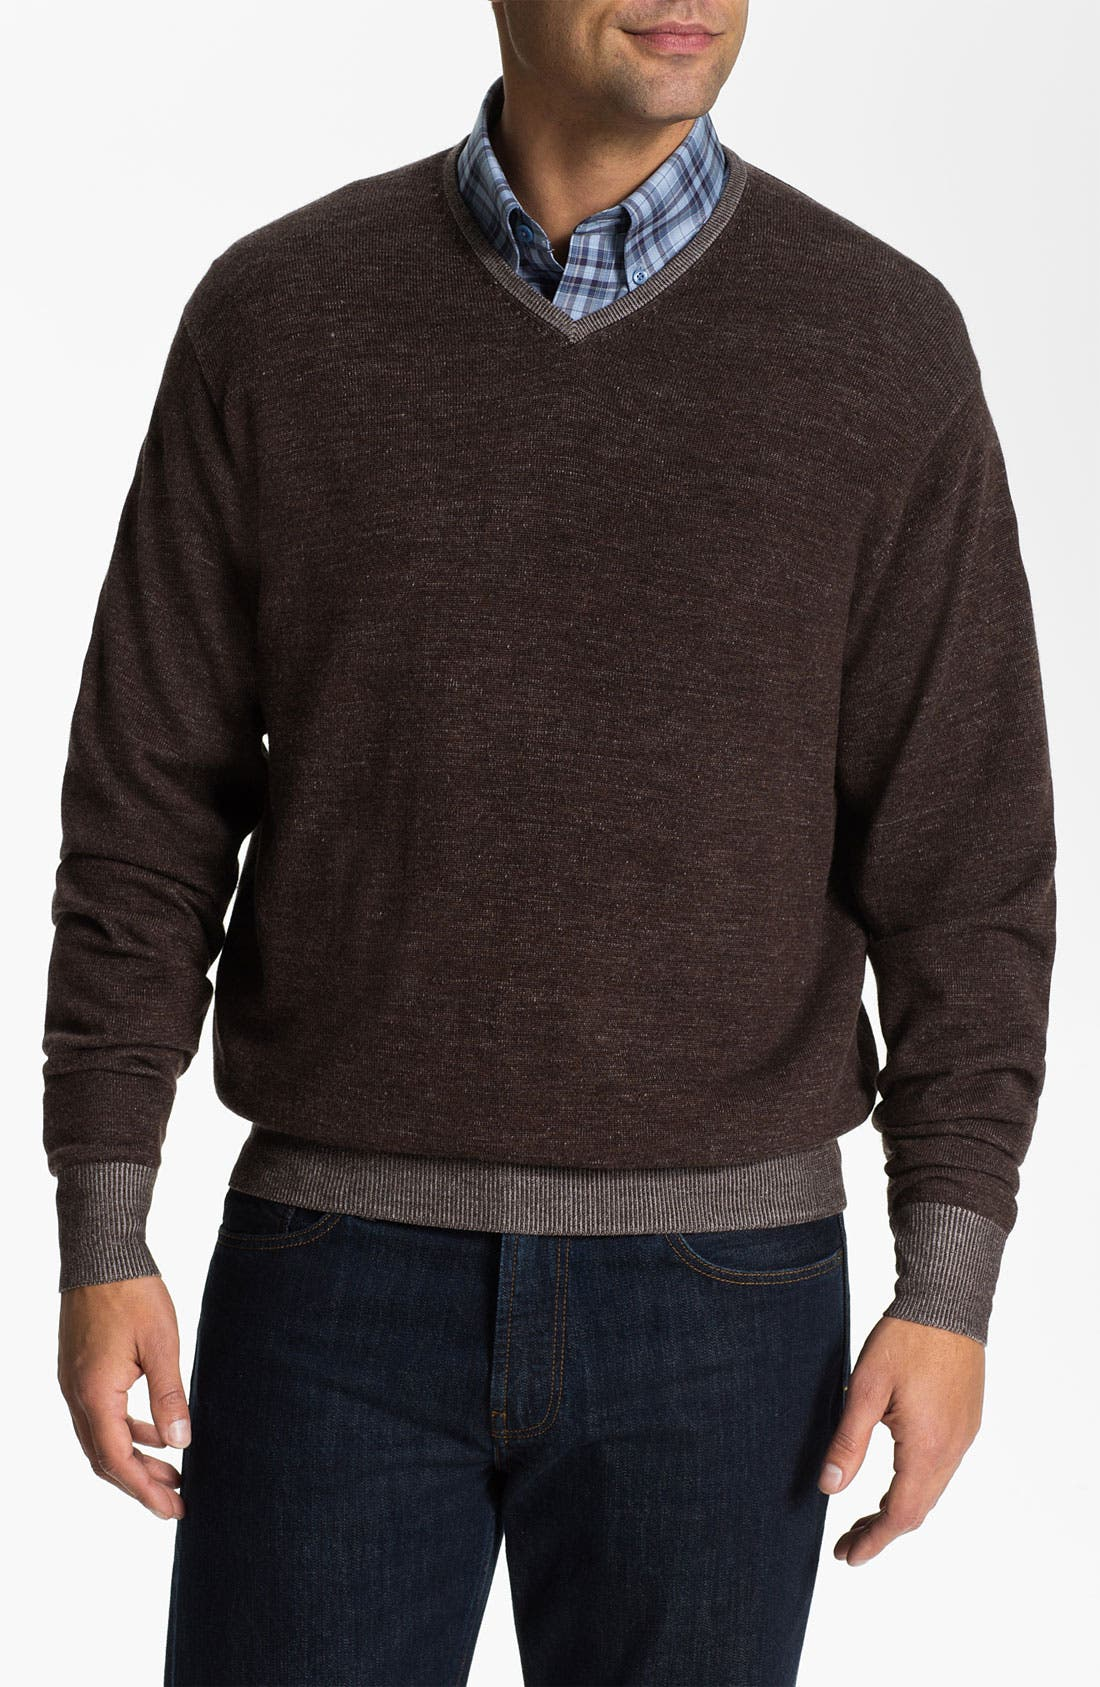 Alternate Image 1 Selected - Peter Millar V-Neck Merino Wool Sweater